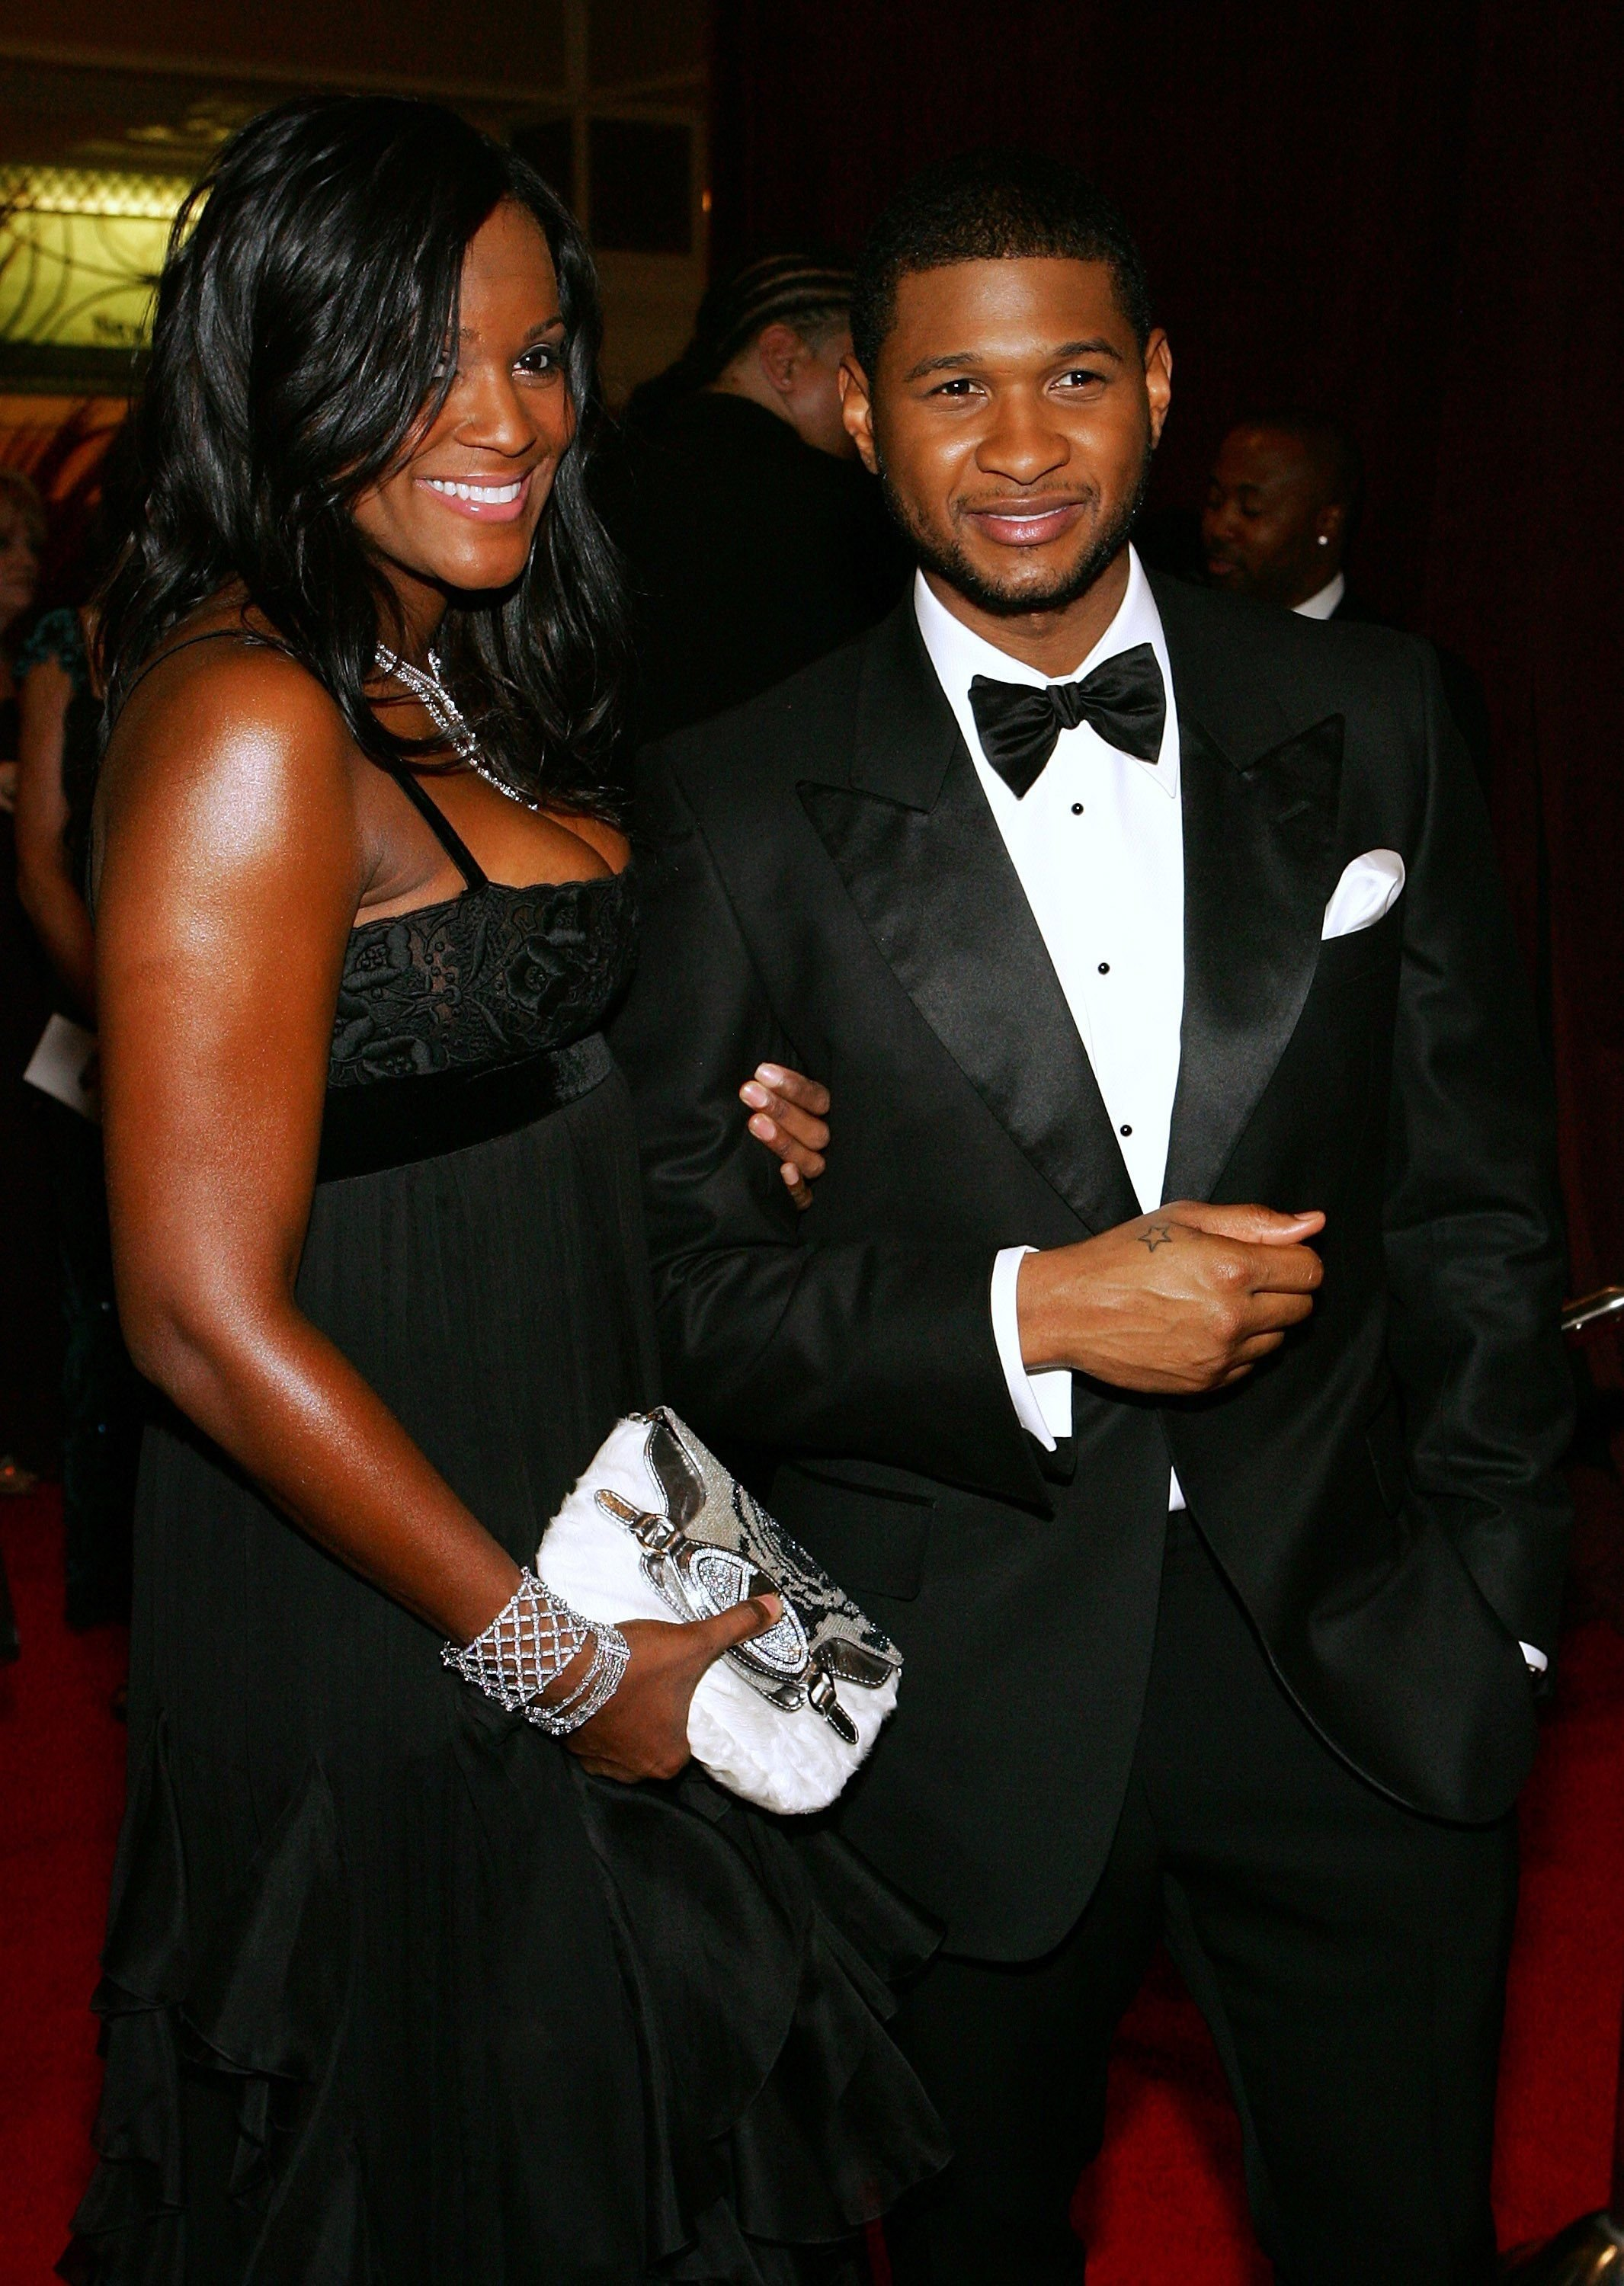 Usher Raymond and Tameka Foster attend the 15th annual Trumpet Awards at the Bellagio January 22, 2007. | Photo: Getty Images